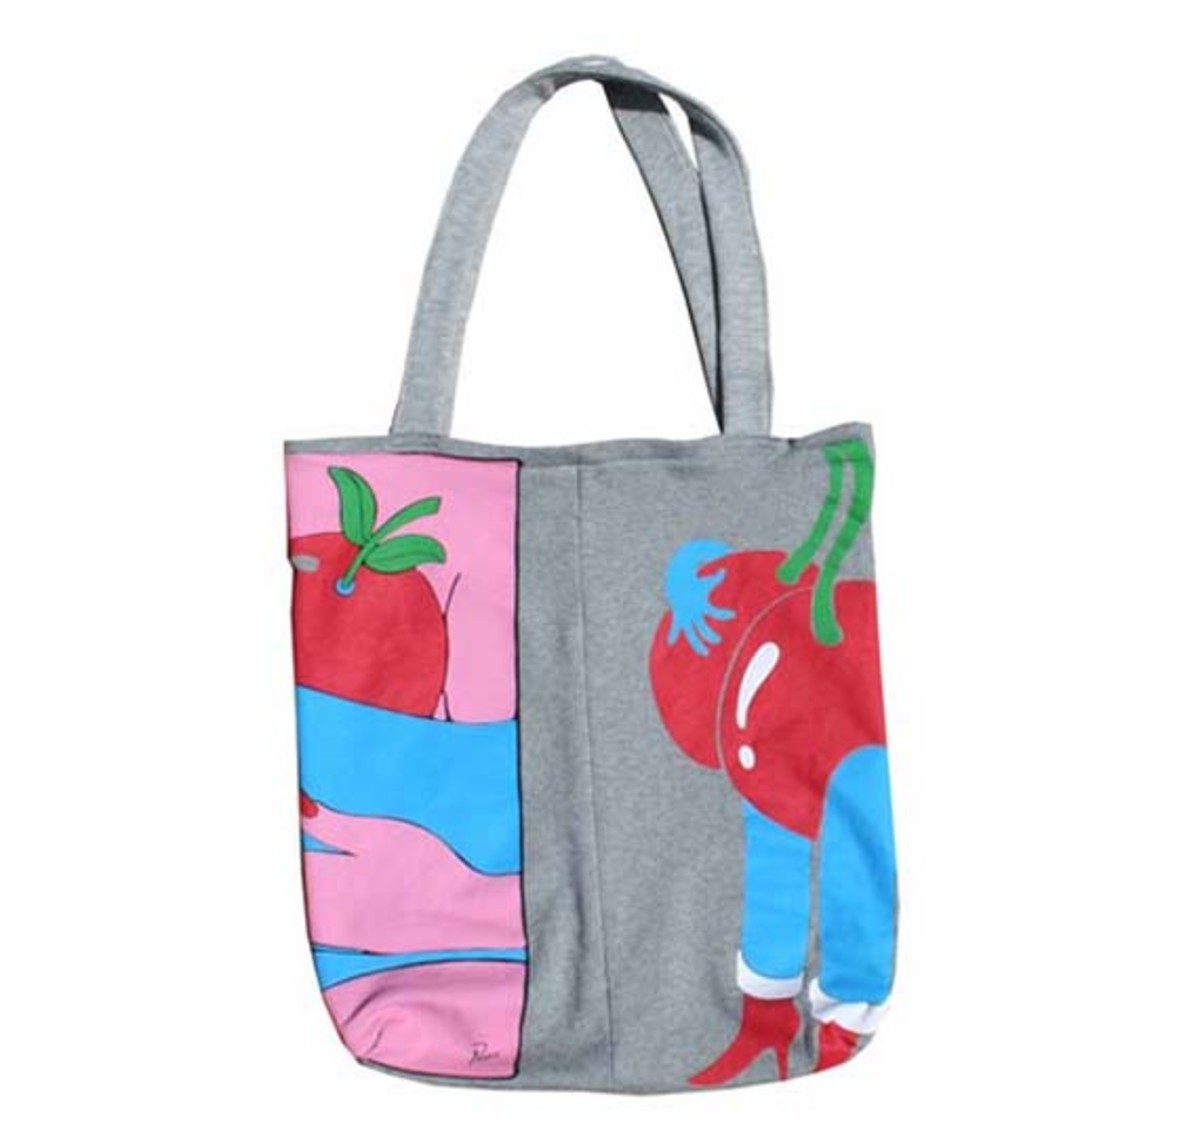 rockwell-summer10-bags-2